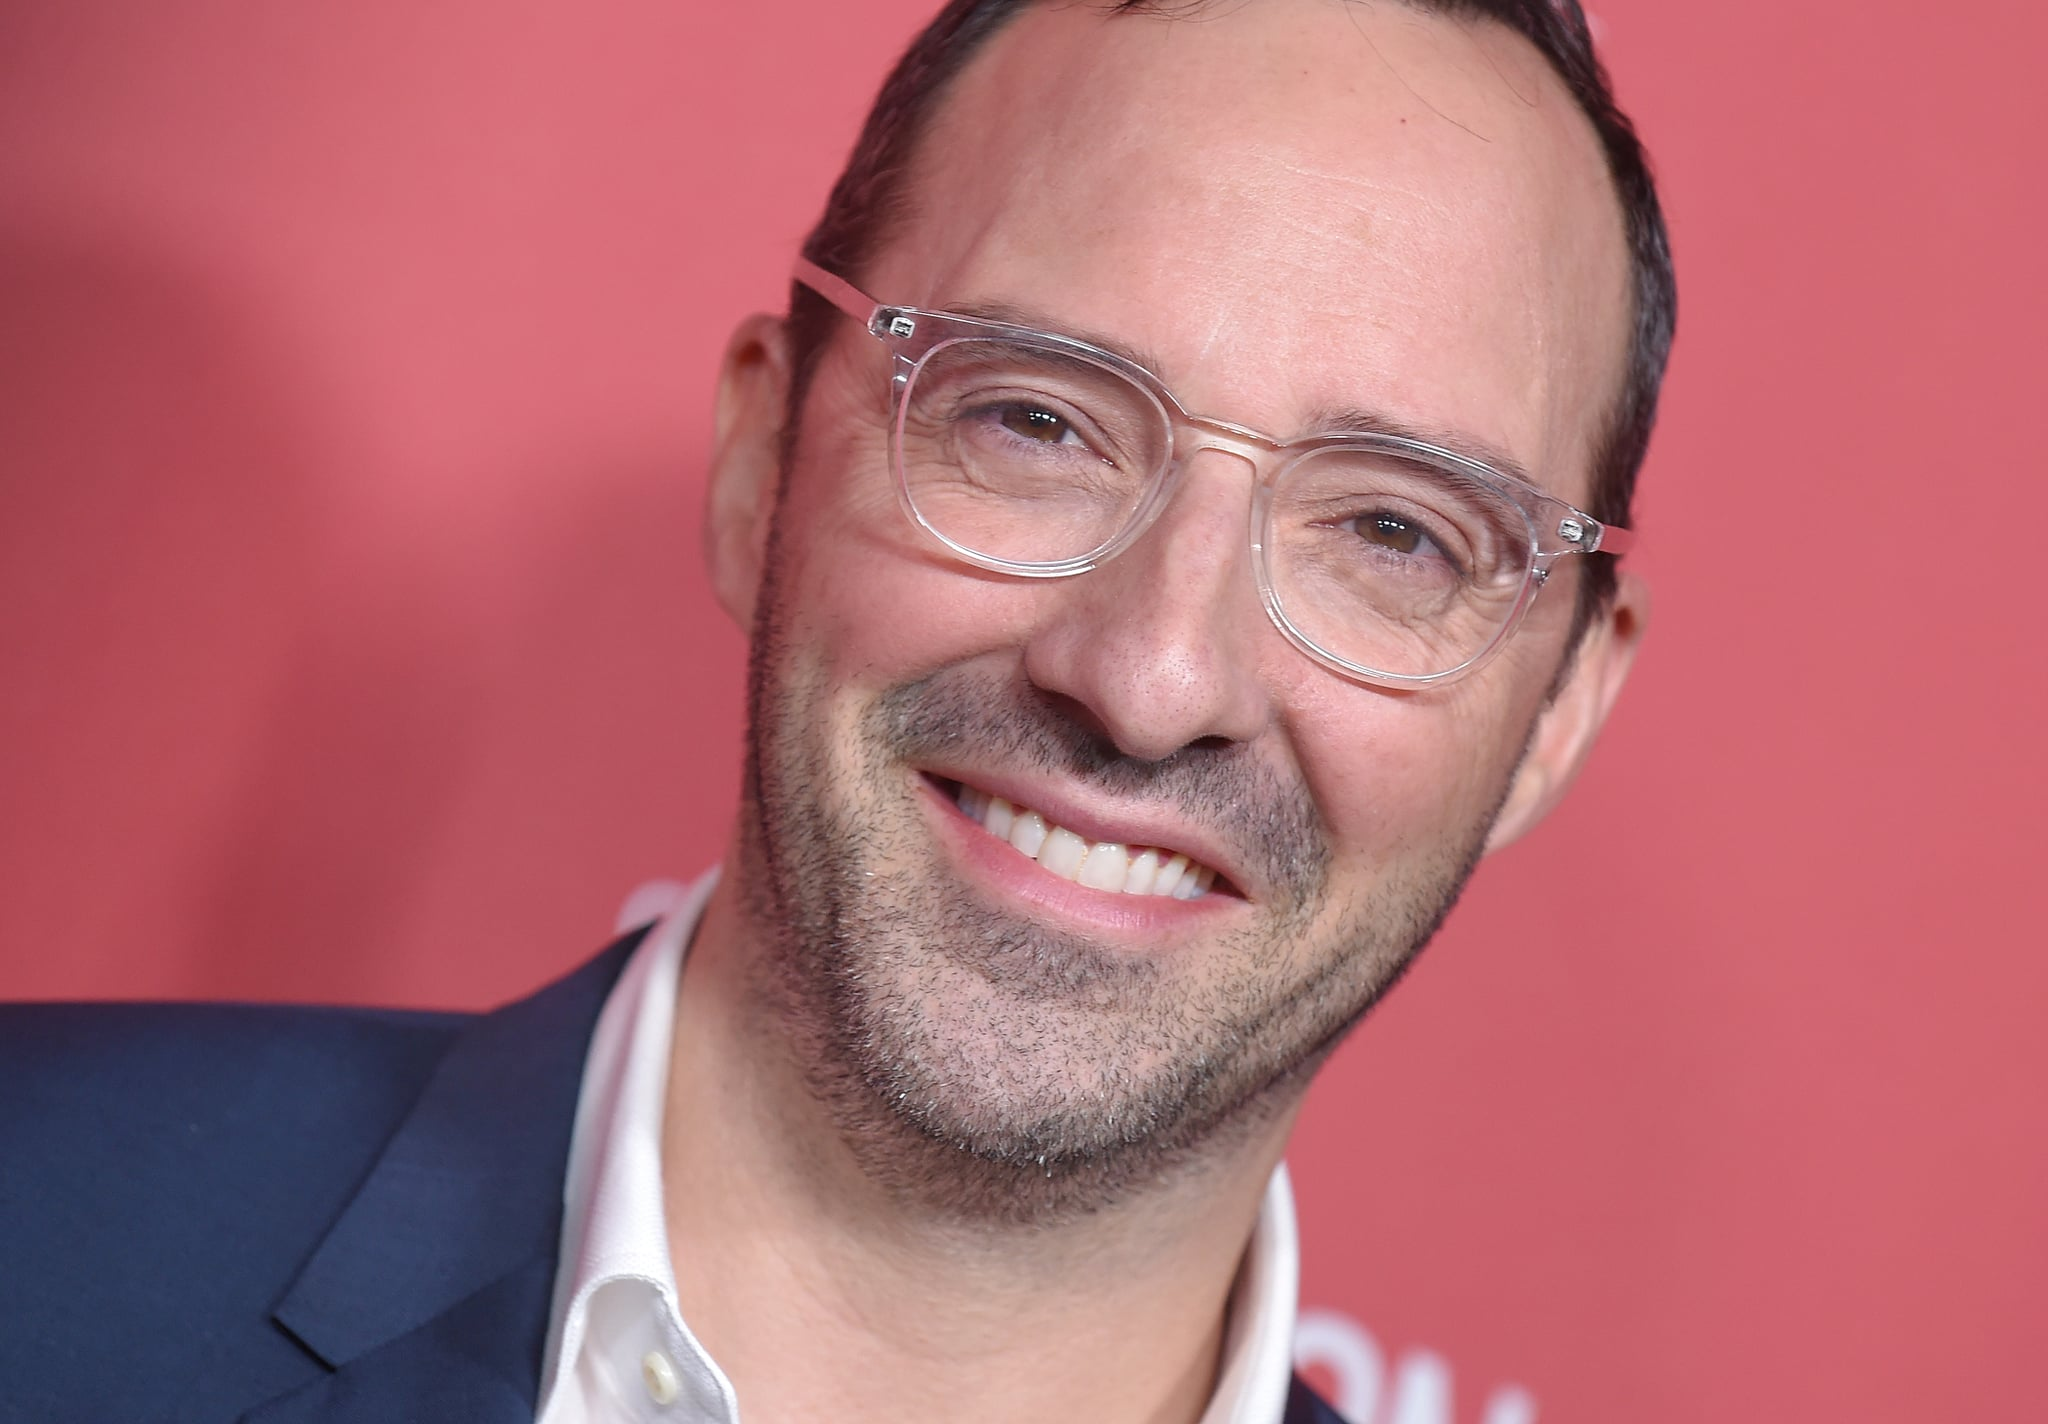 Actor Tony Hale attends the The SAG-AFTRA Foundation 3rd Patron of the Artists Awards in Los Angeles, California, on November 8, 2018. (Photo by LISA O'CONNOR / AFP)        (Photo credit should read LISA O'CONNOR/AFP/Getty Images)